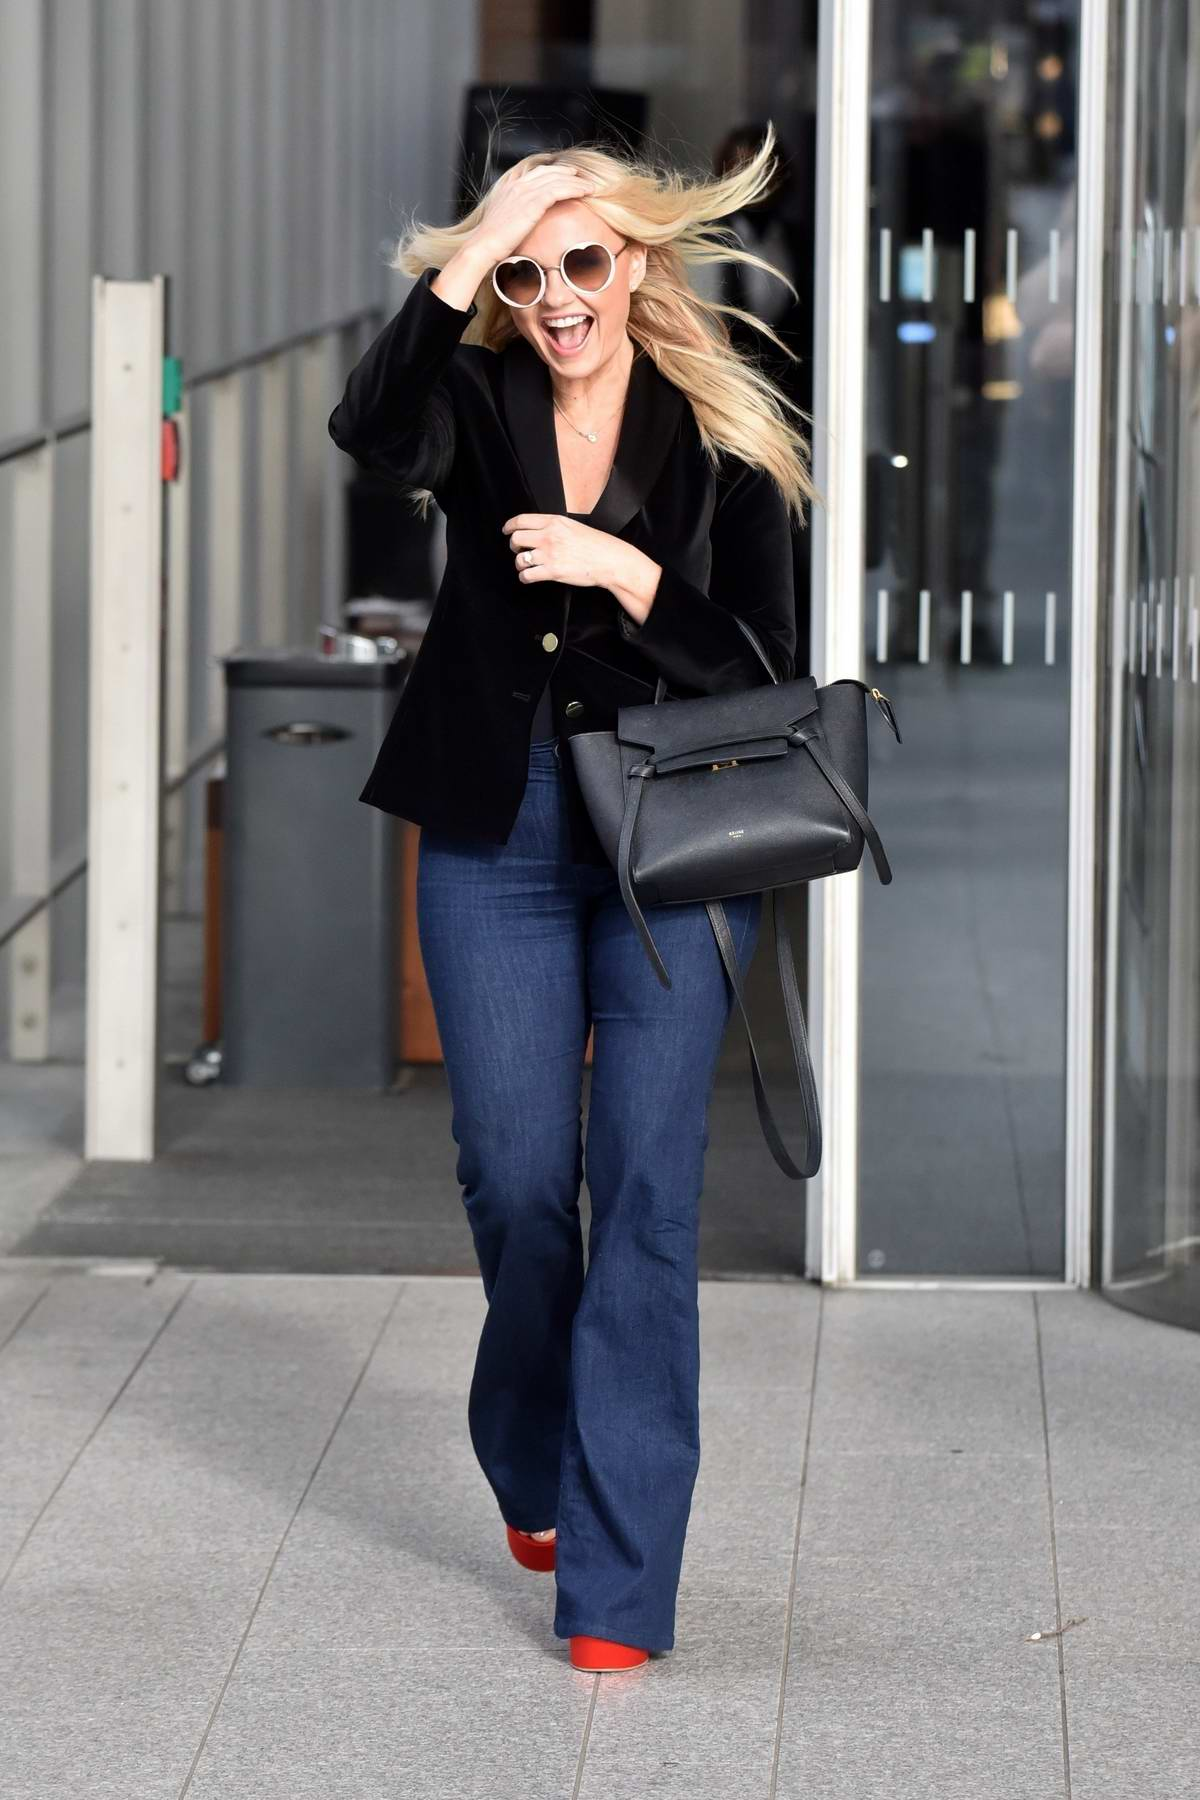 Emma Bunton is all smiles as she leaves the Virgin radio studios in London, UK